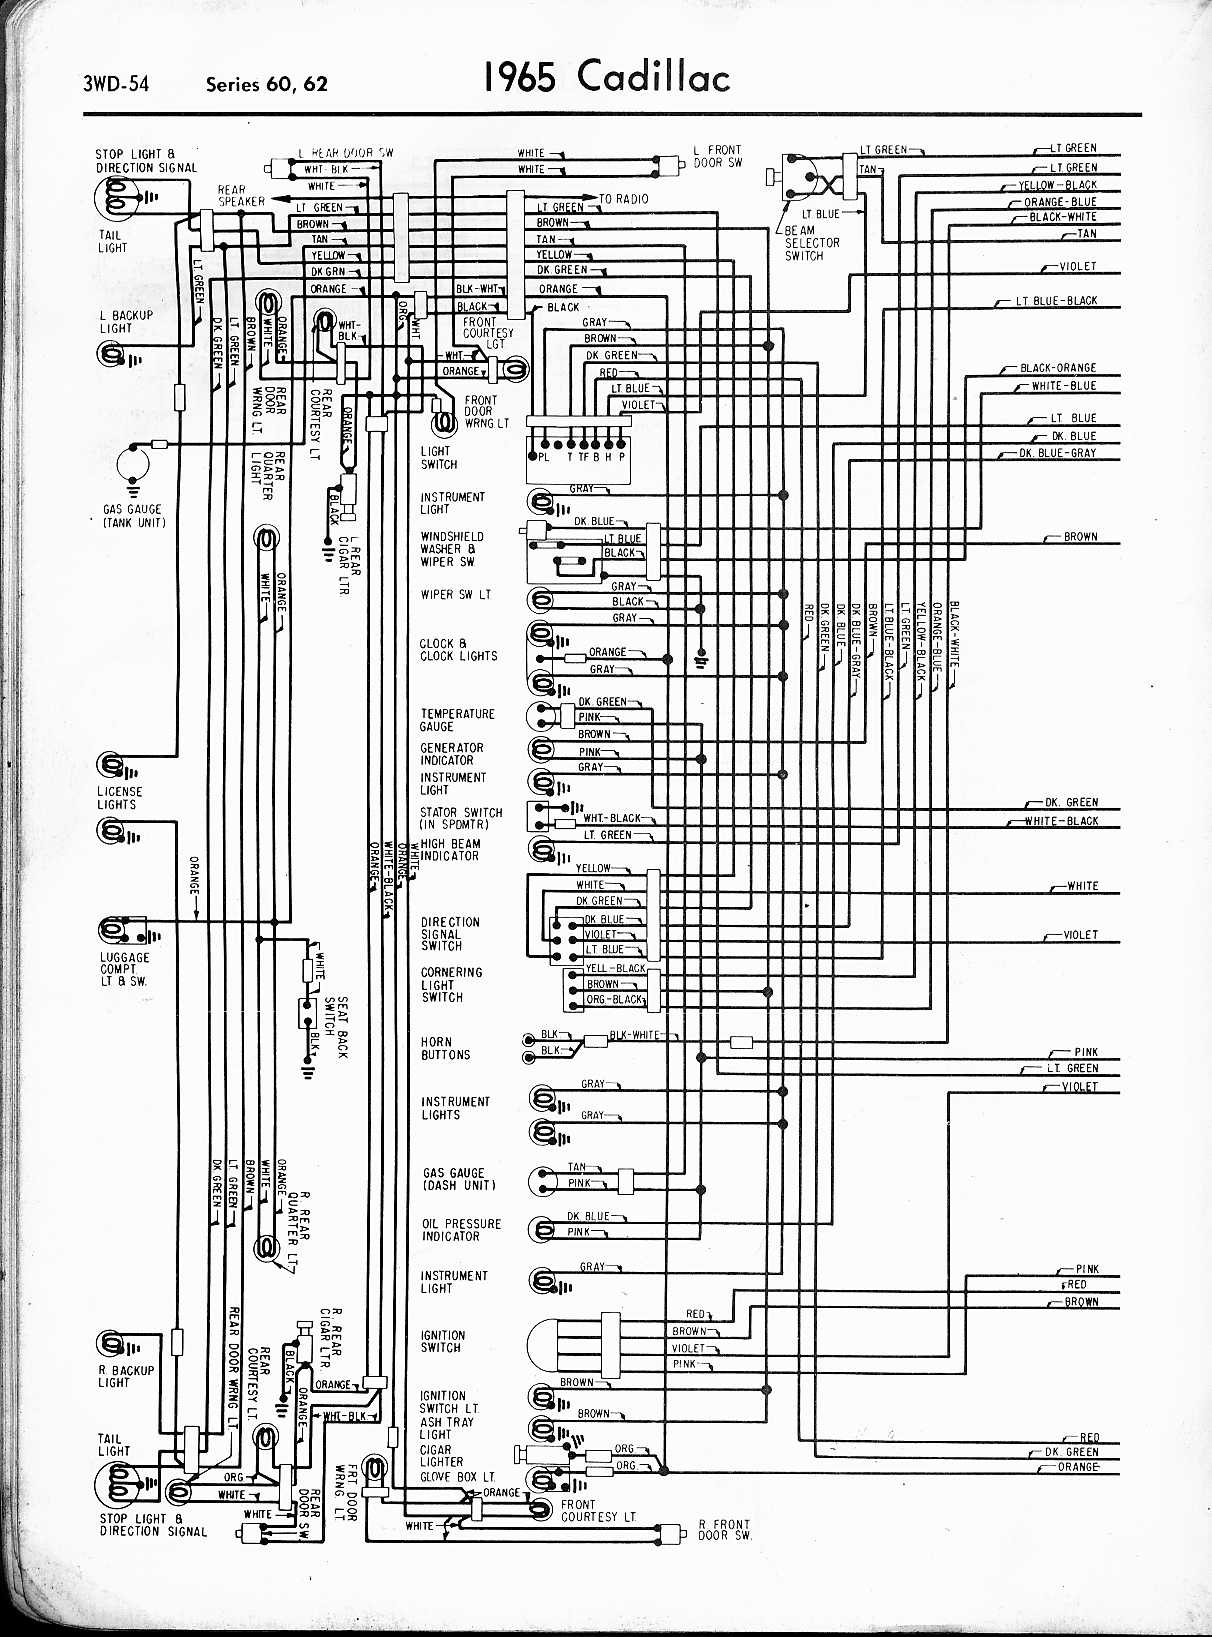 Cadillac Wiring Diagrams : Cadillac wiring diagrams diagram images